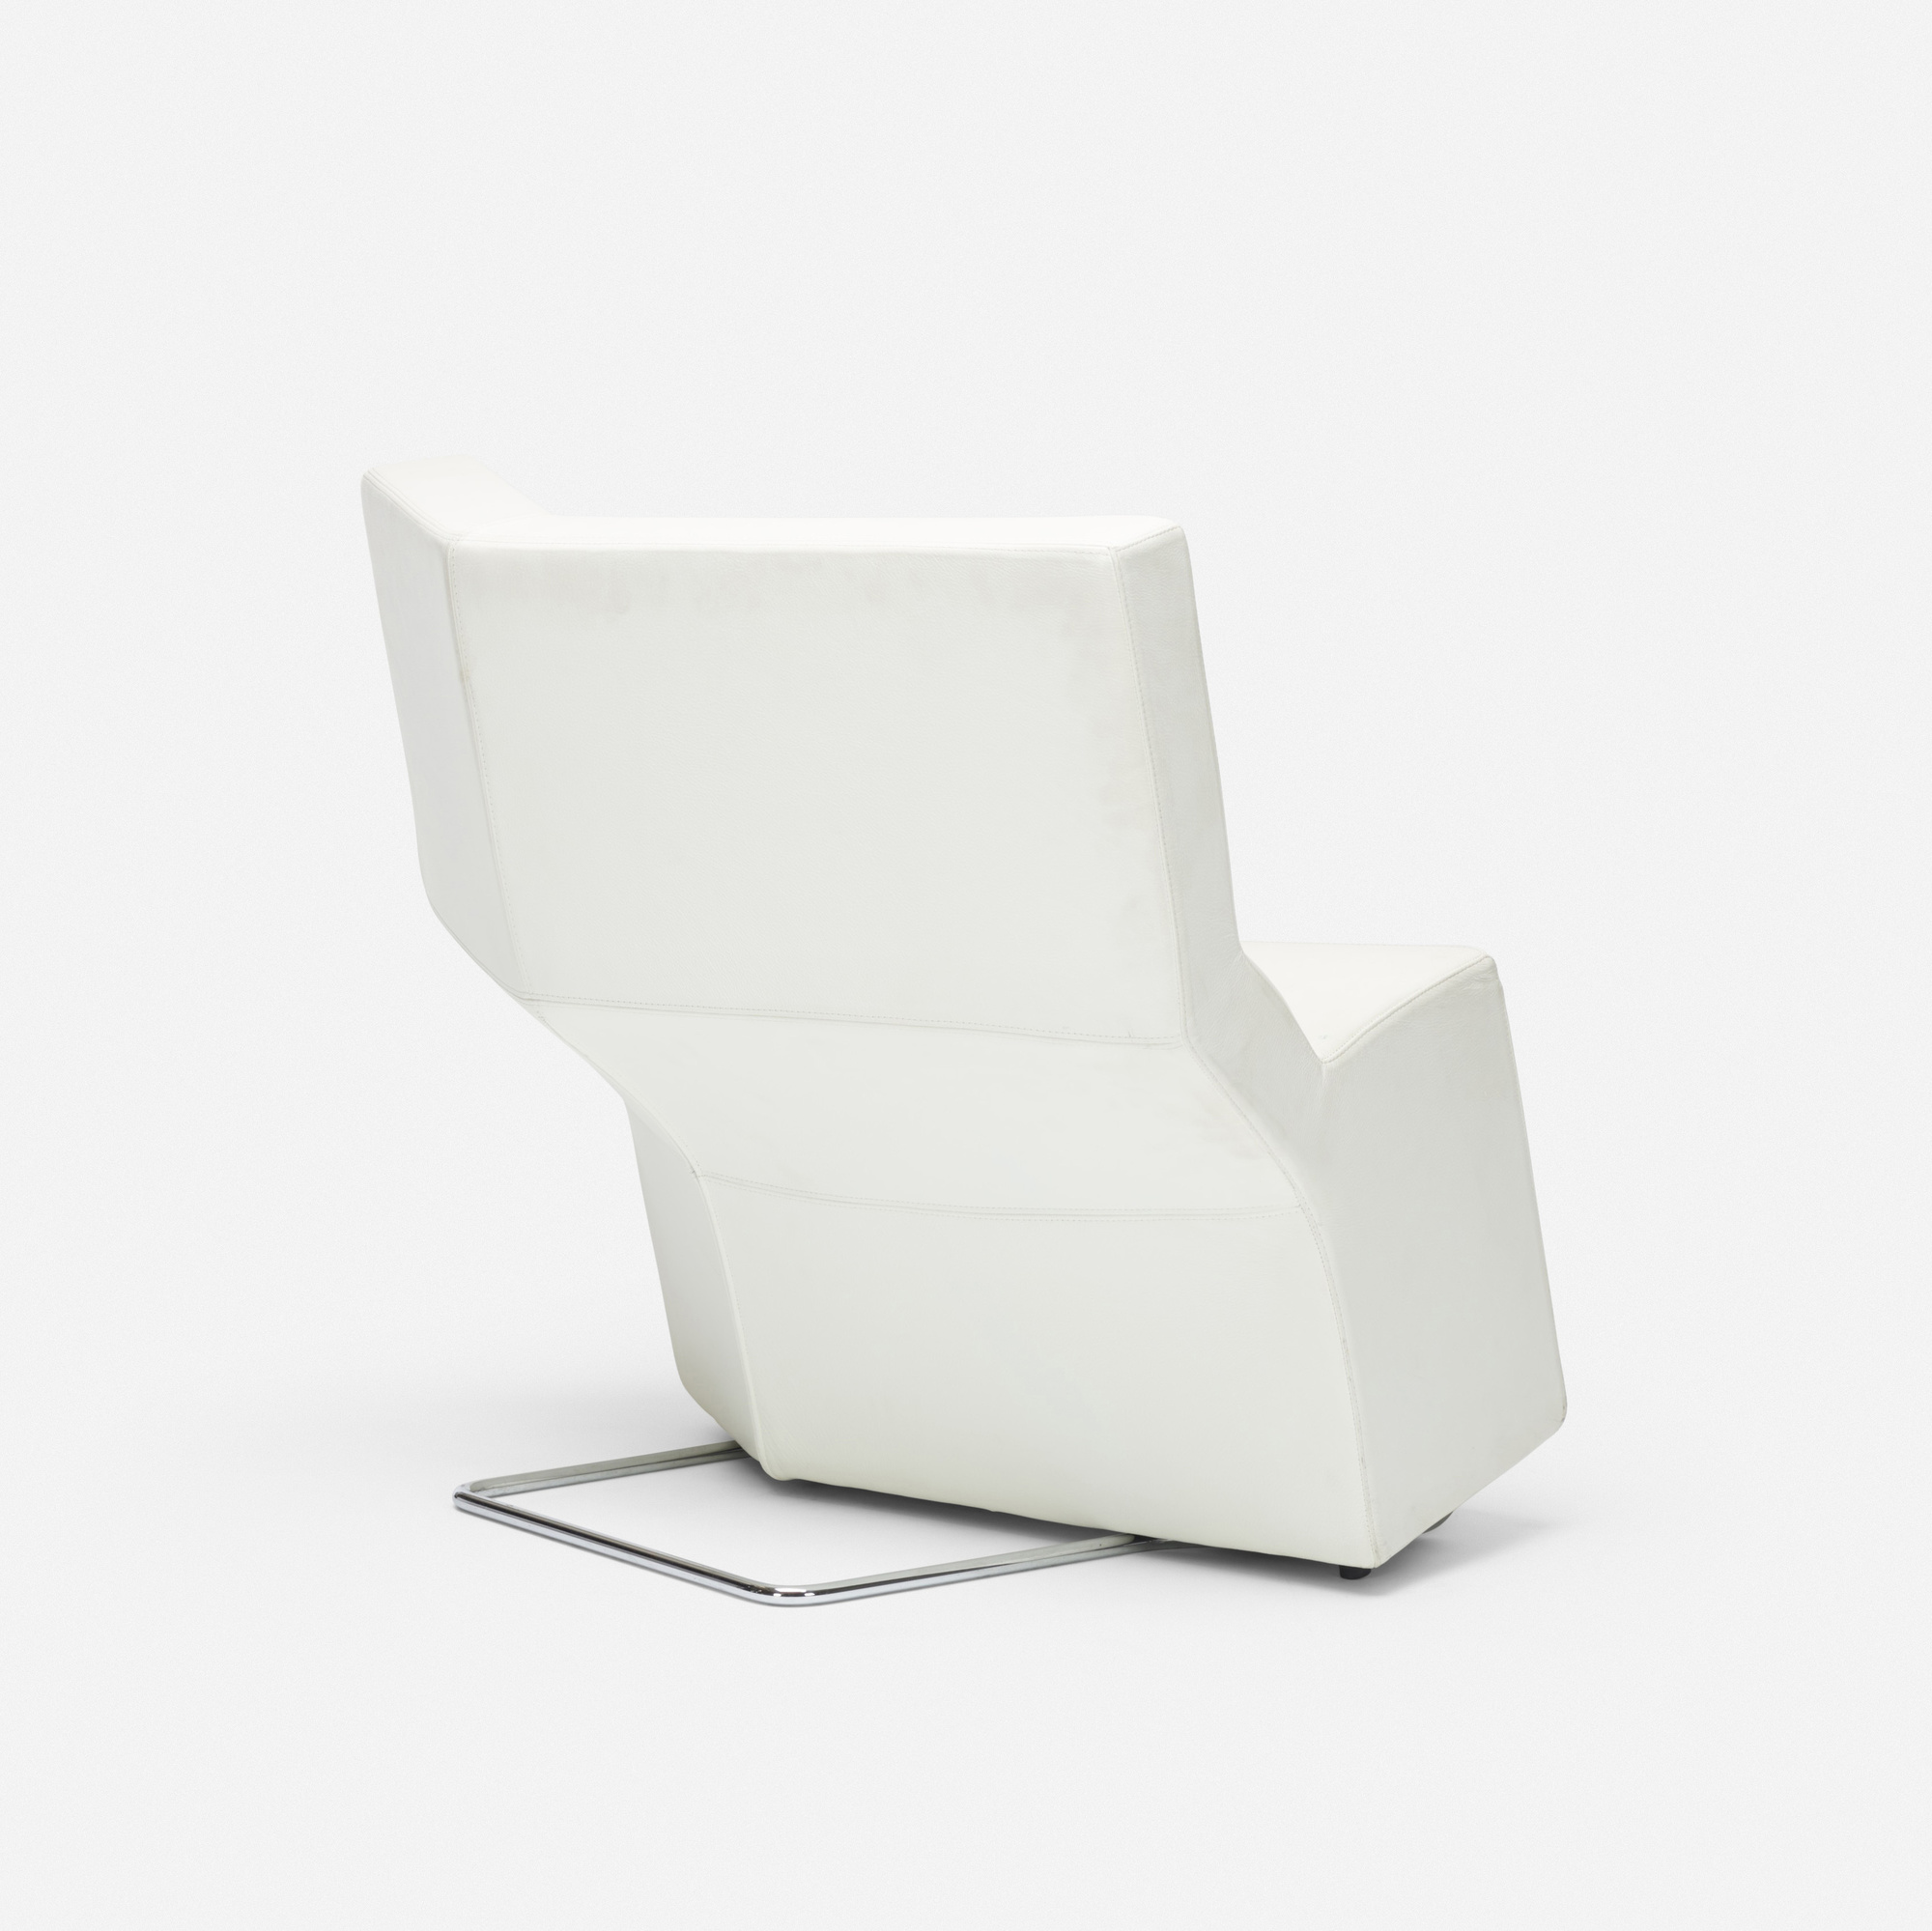 406: Konstantin Grcic / Chaos chair (2 of 2)